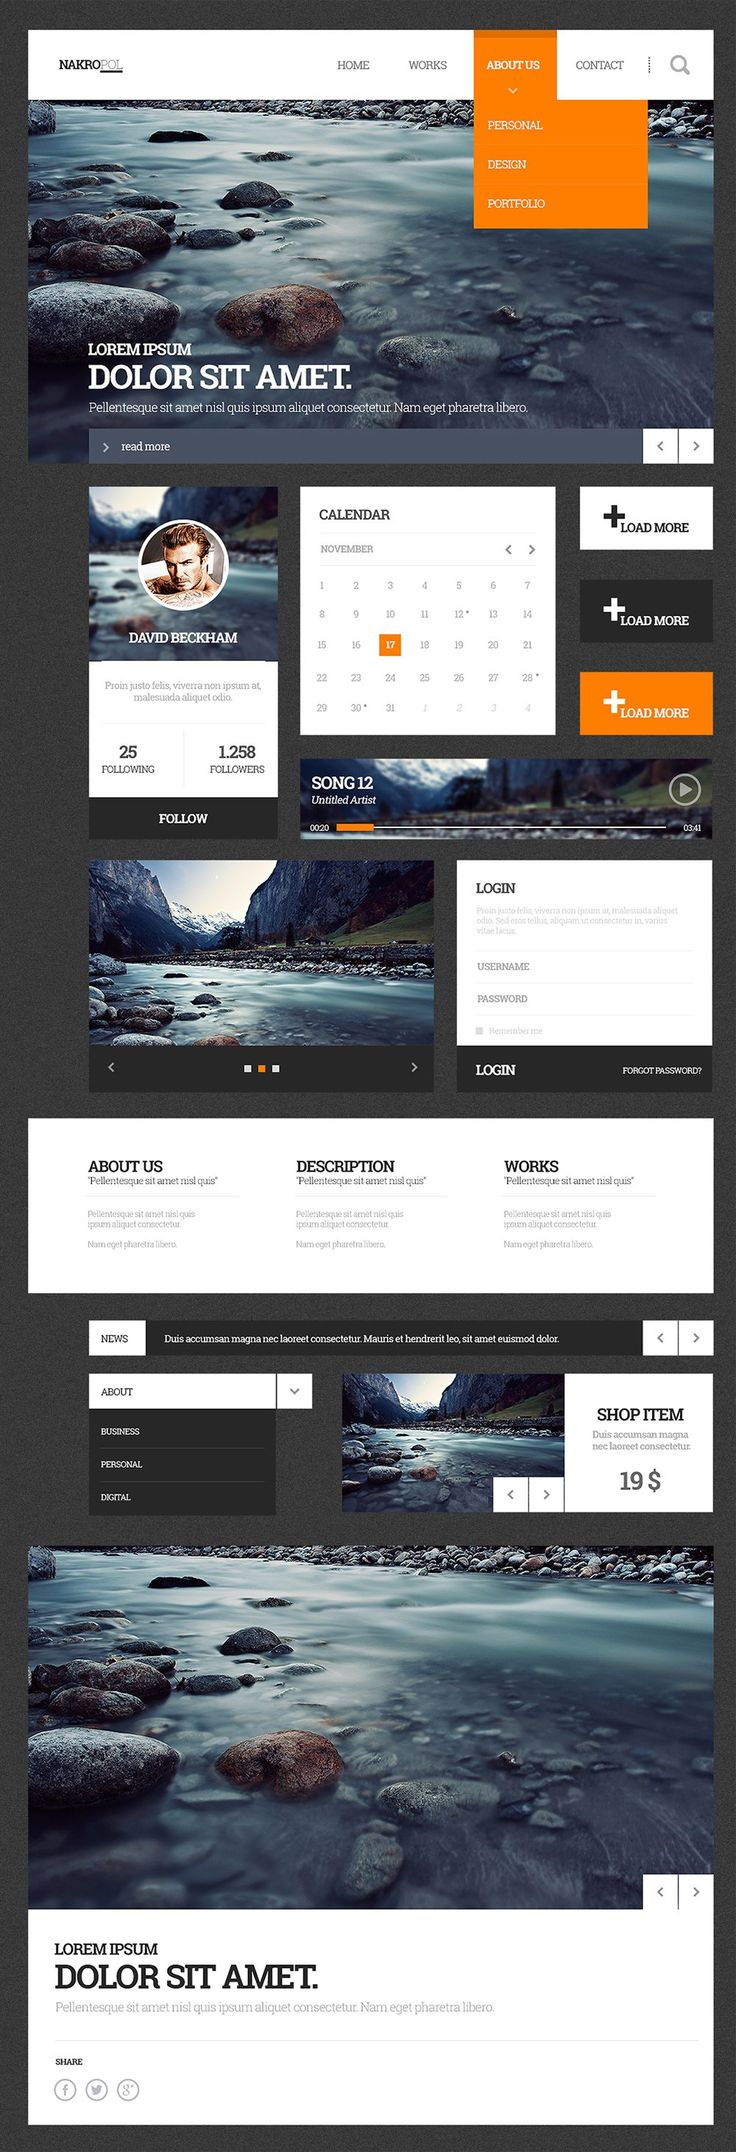 Latest Free UI Kits From 2015